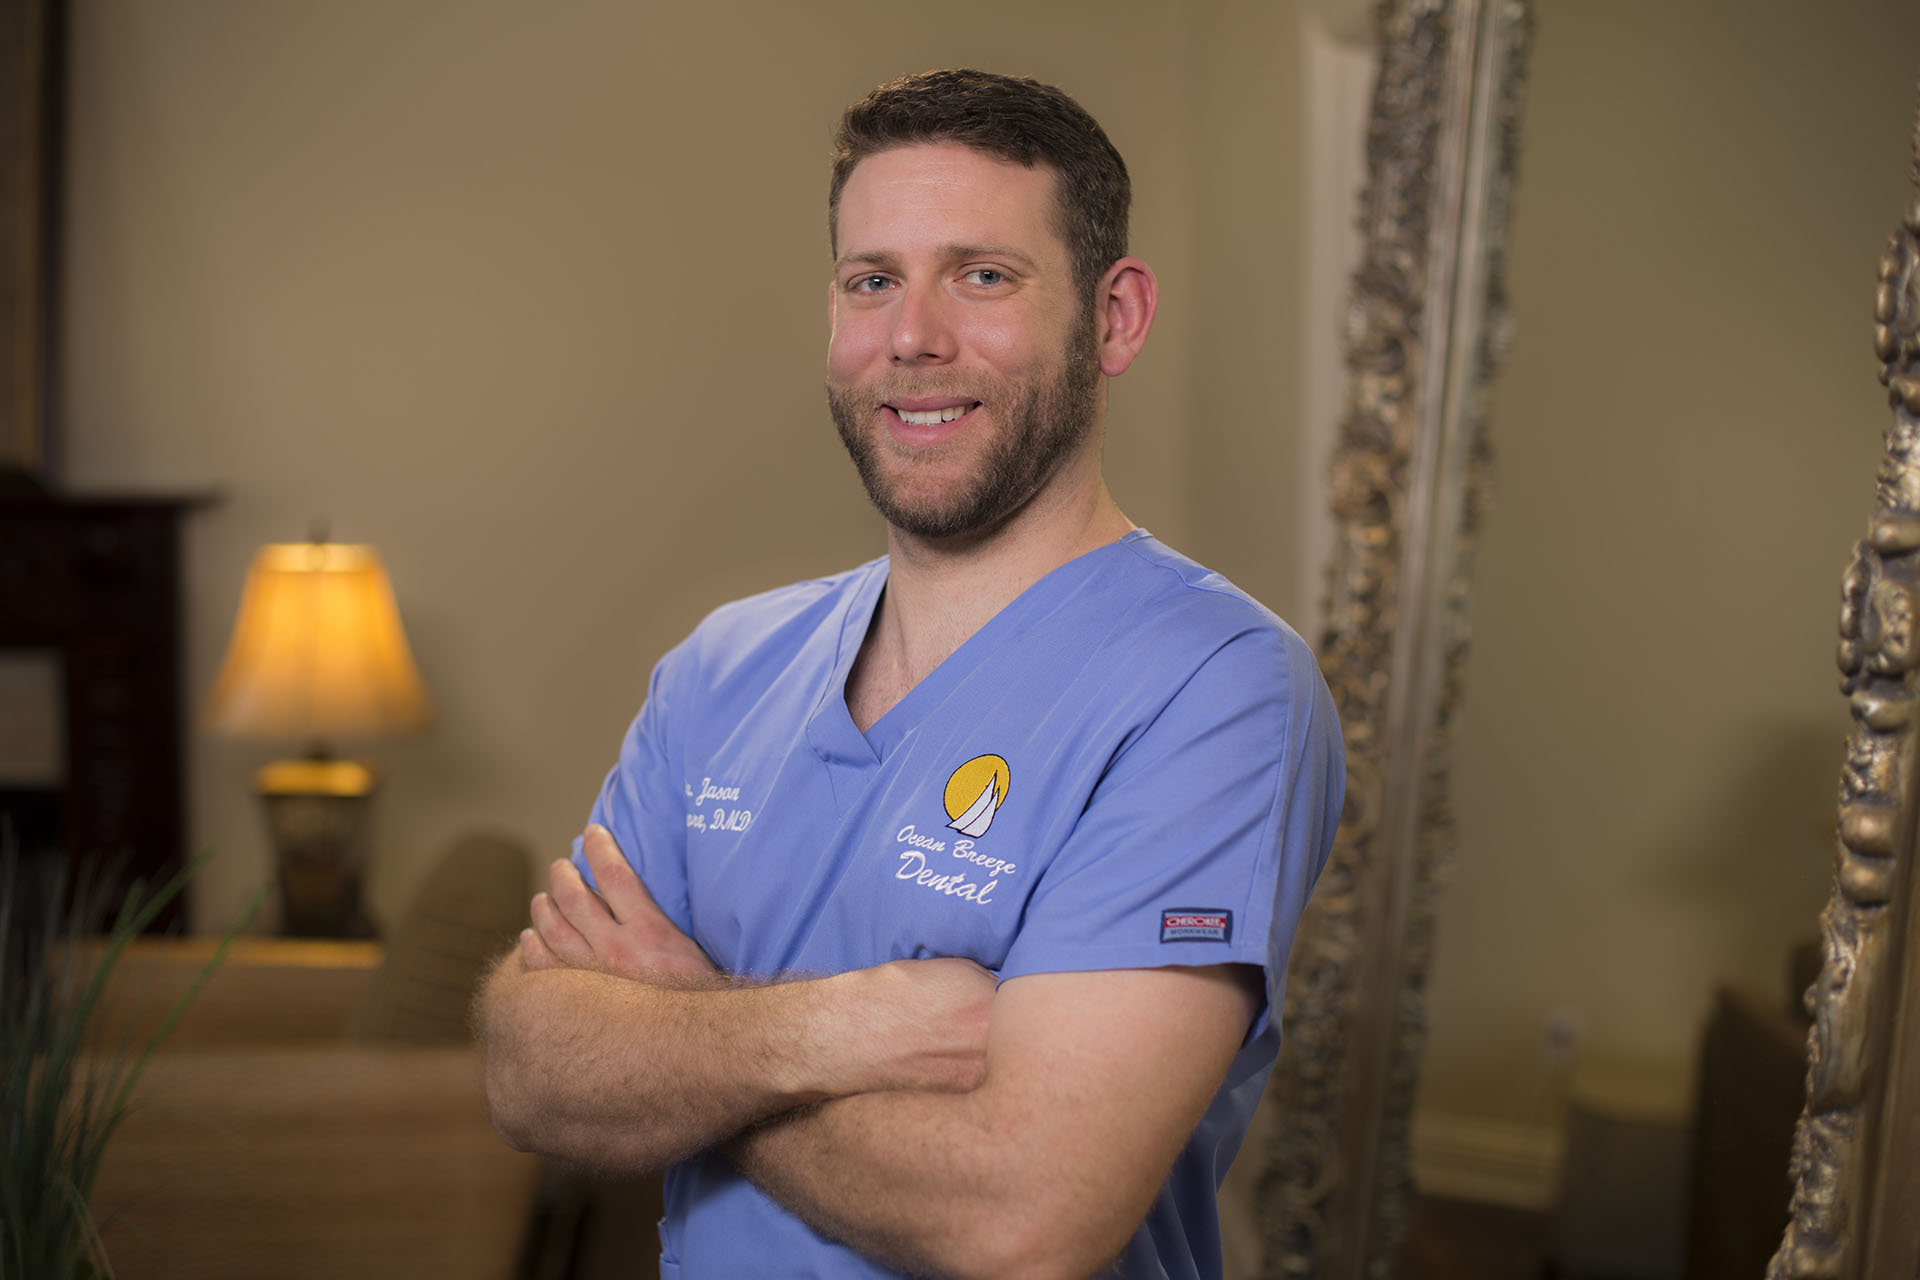 Dr. Jason A. Wetmore, DMD Sedation Dentistry and Dental Surgery